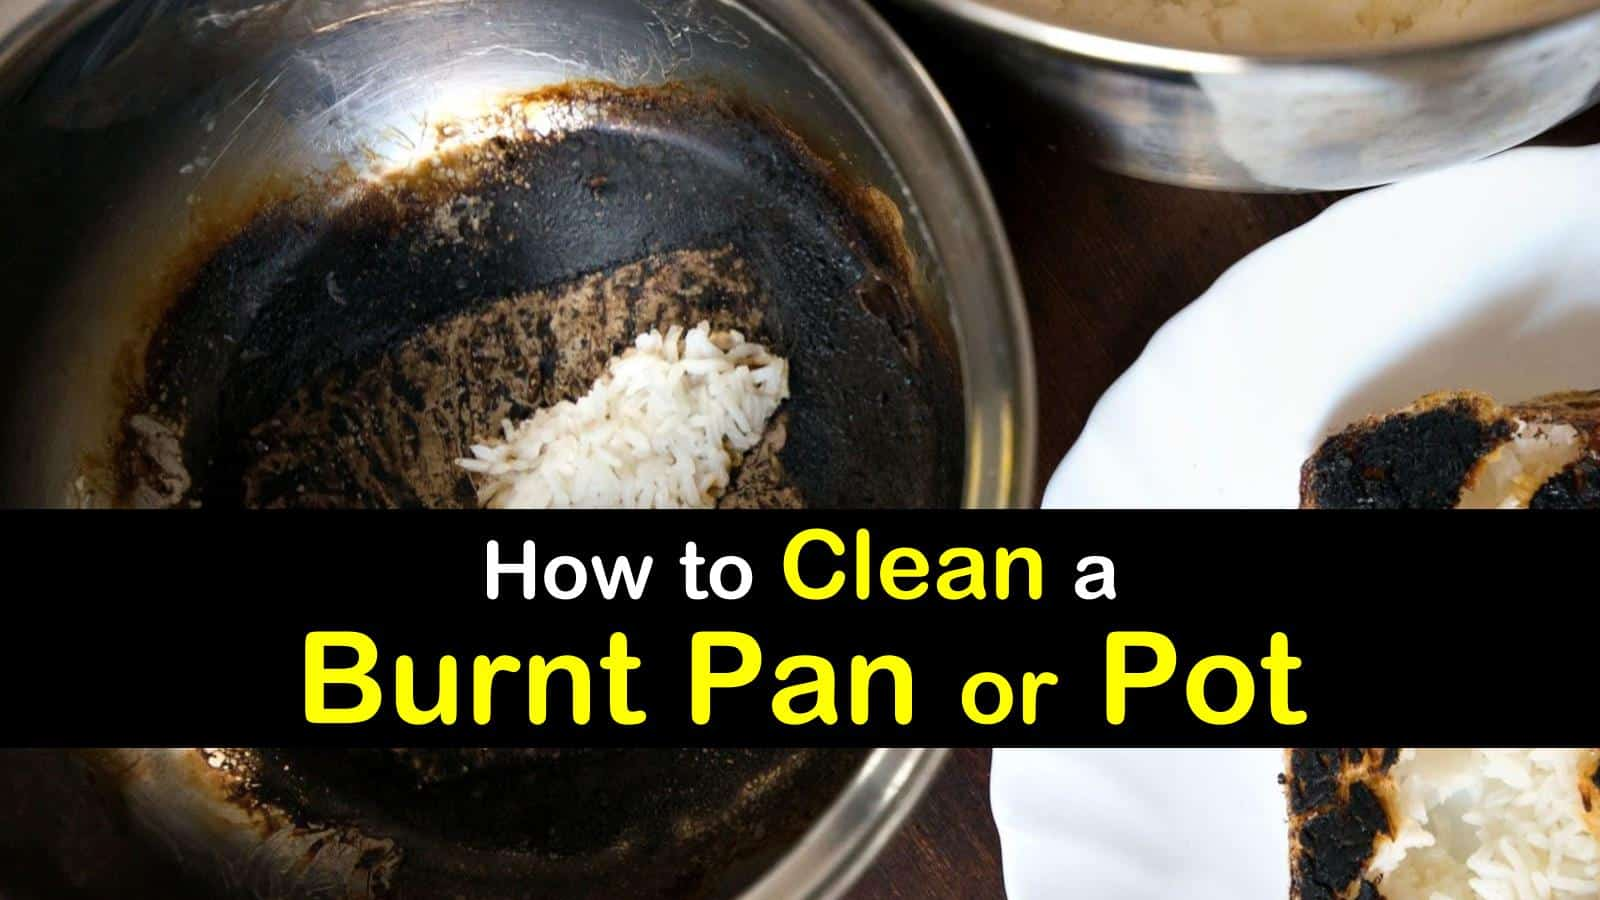 7 Easy Ways To Clean A Burnt Pan Or Pot